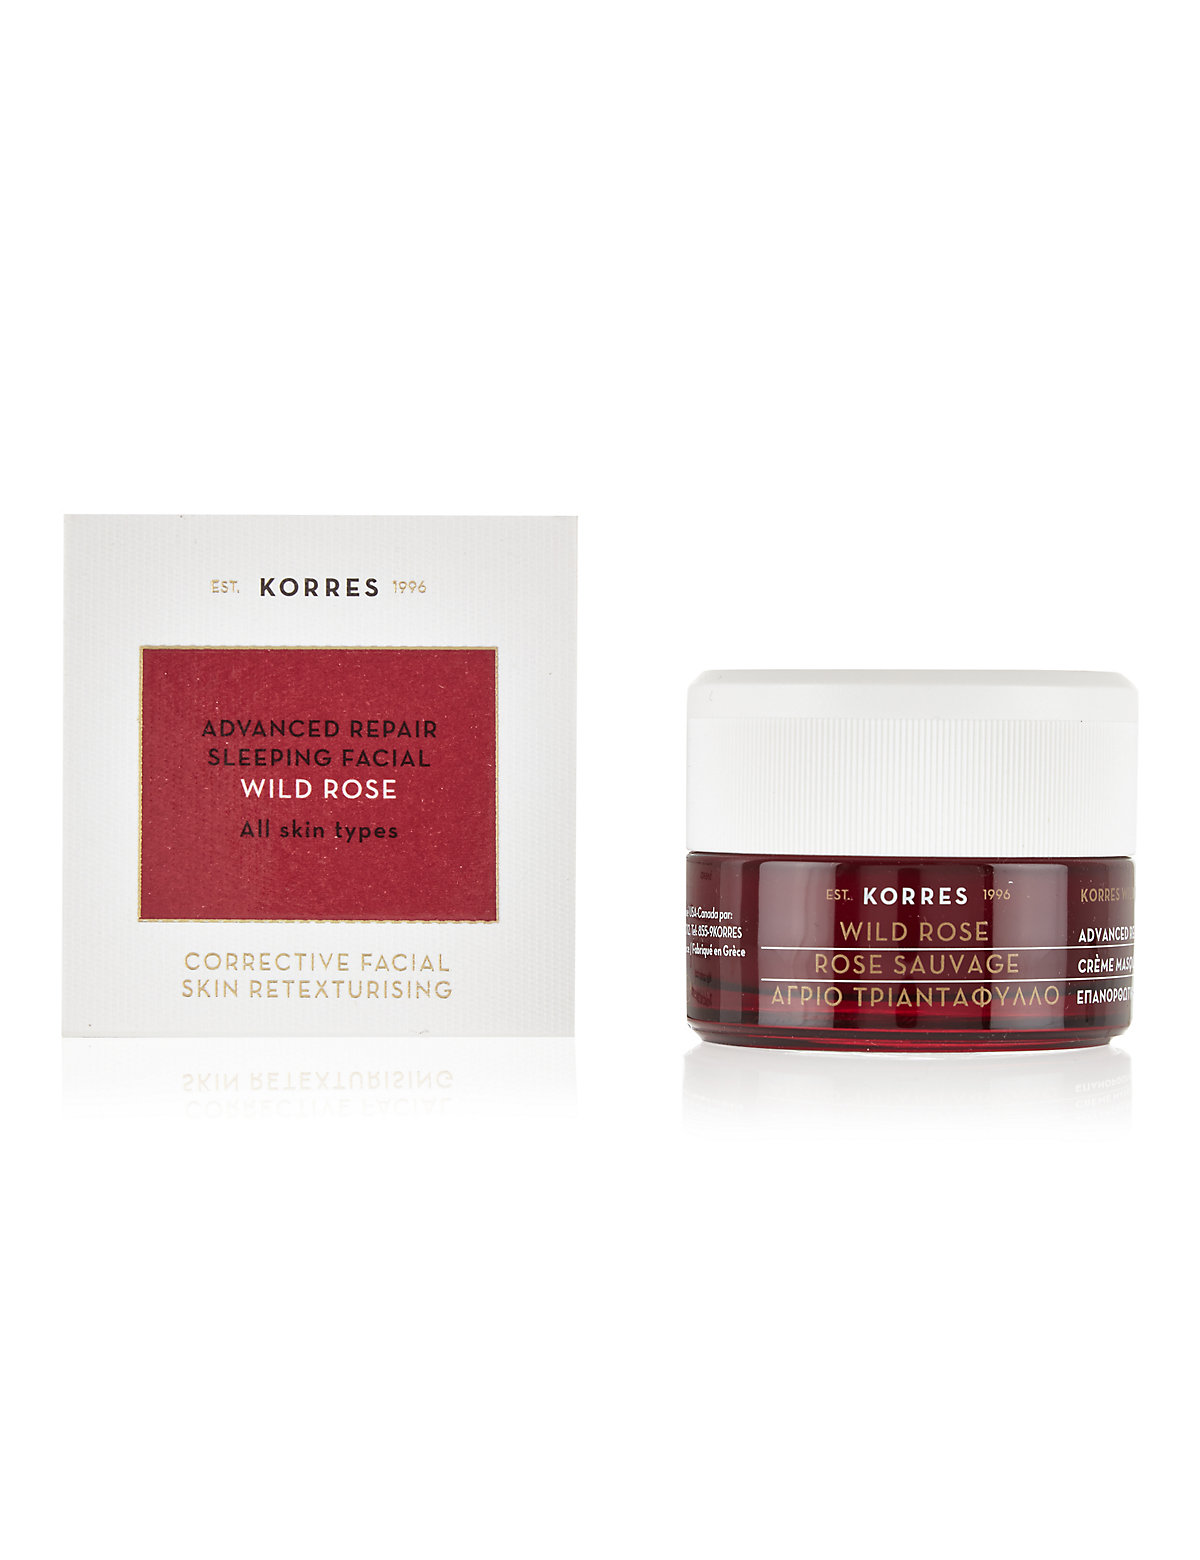 Korres Wild Rose Sleeping Facial Cream 40ml